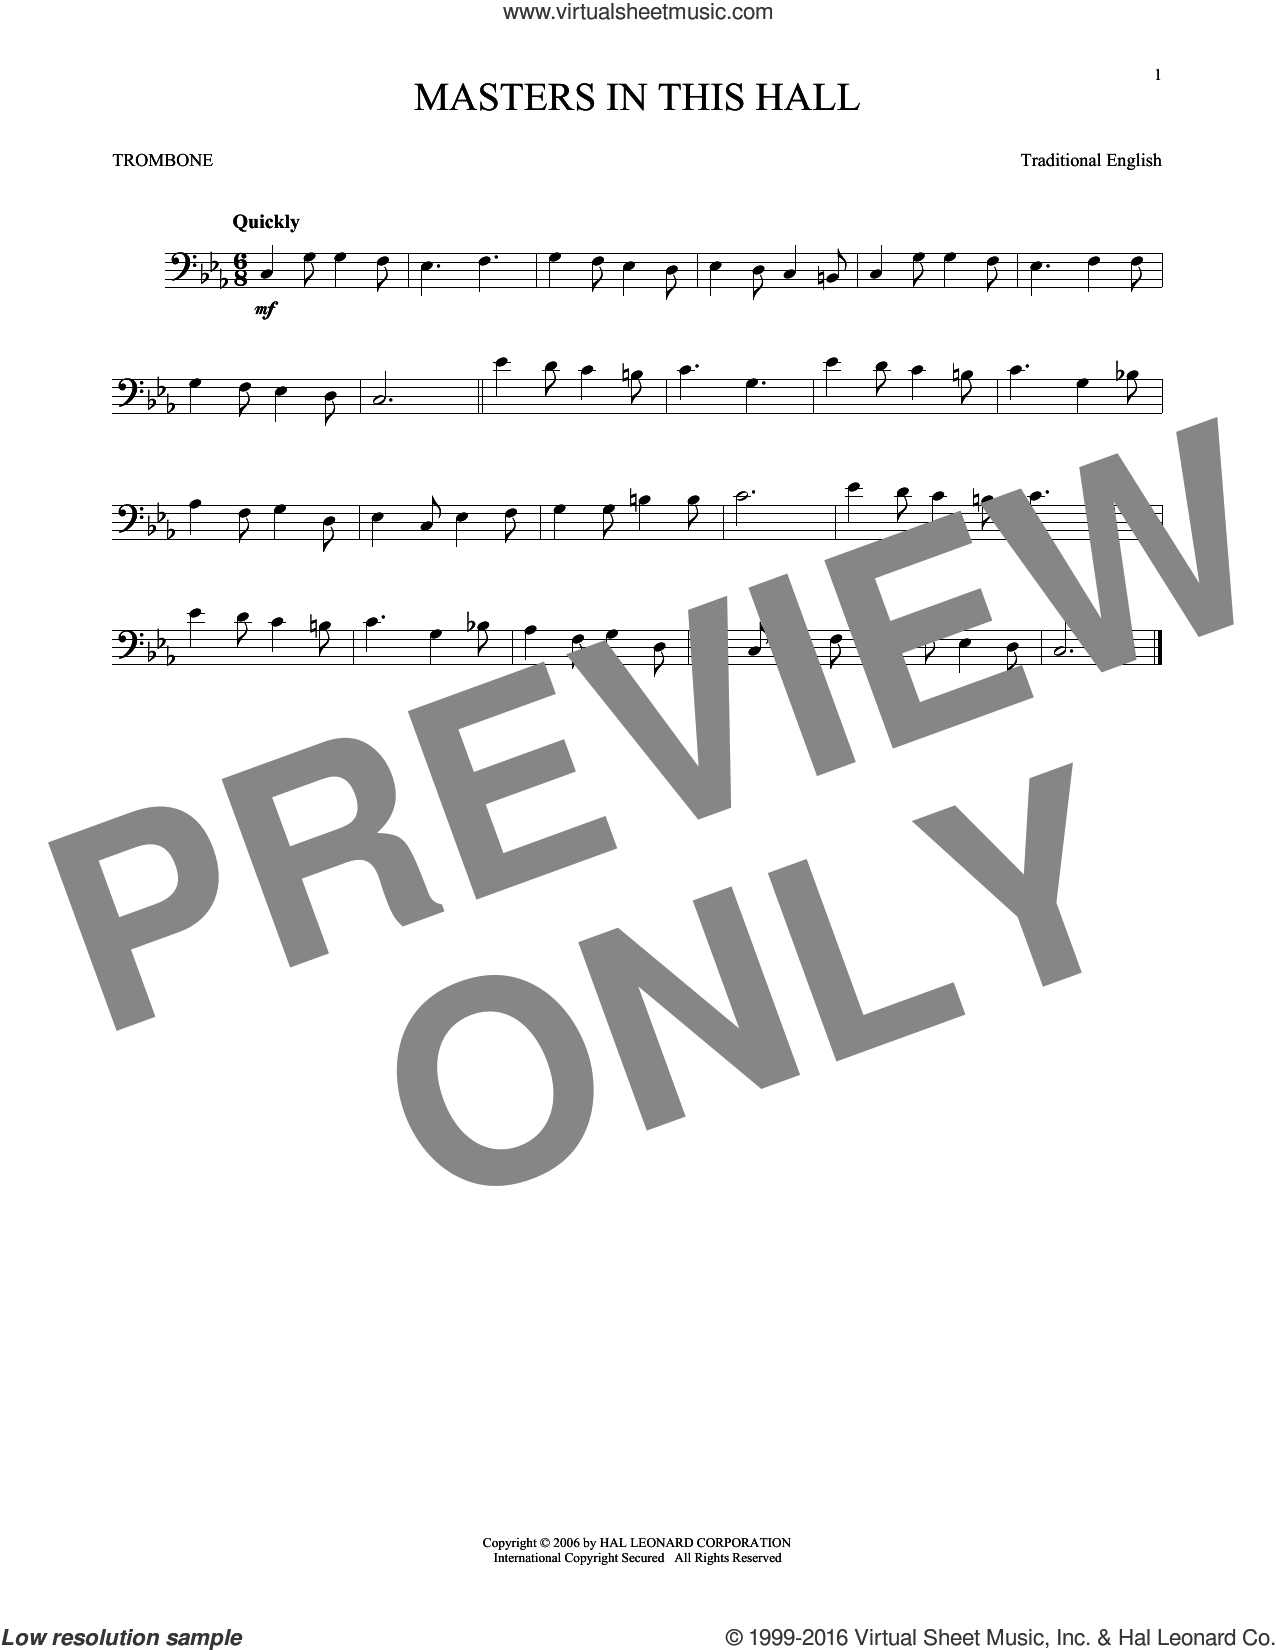 Masters In This Hall sheet music for trombone solo, intermediate skill level